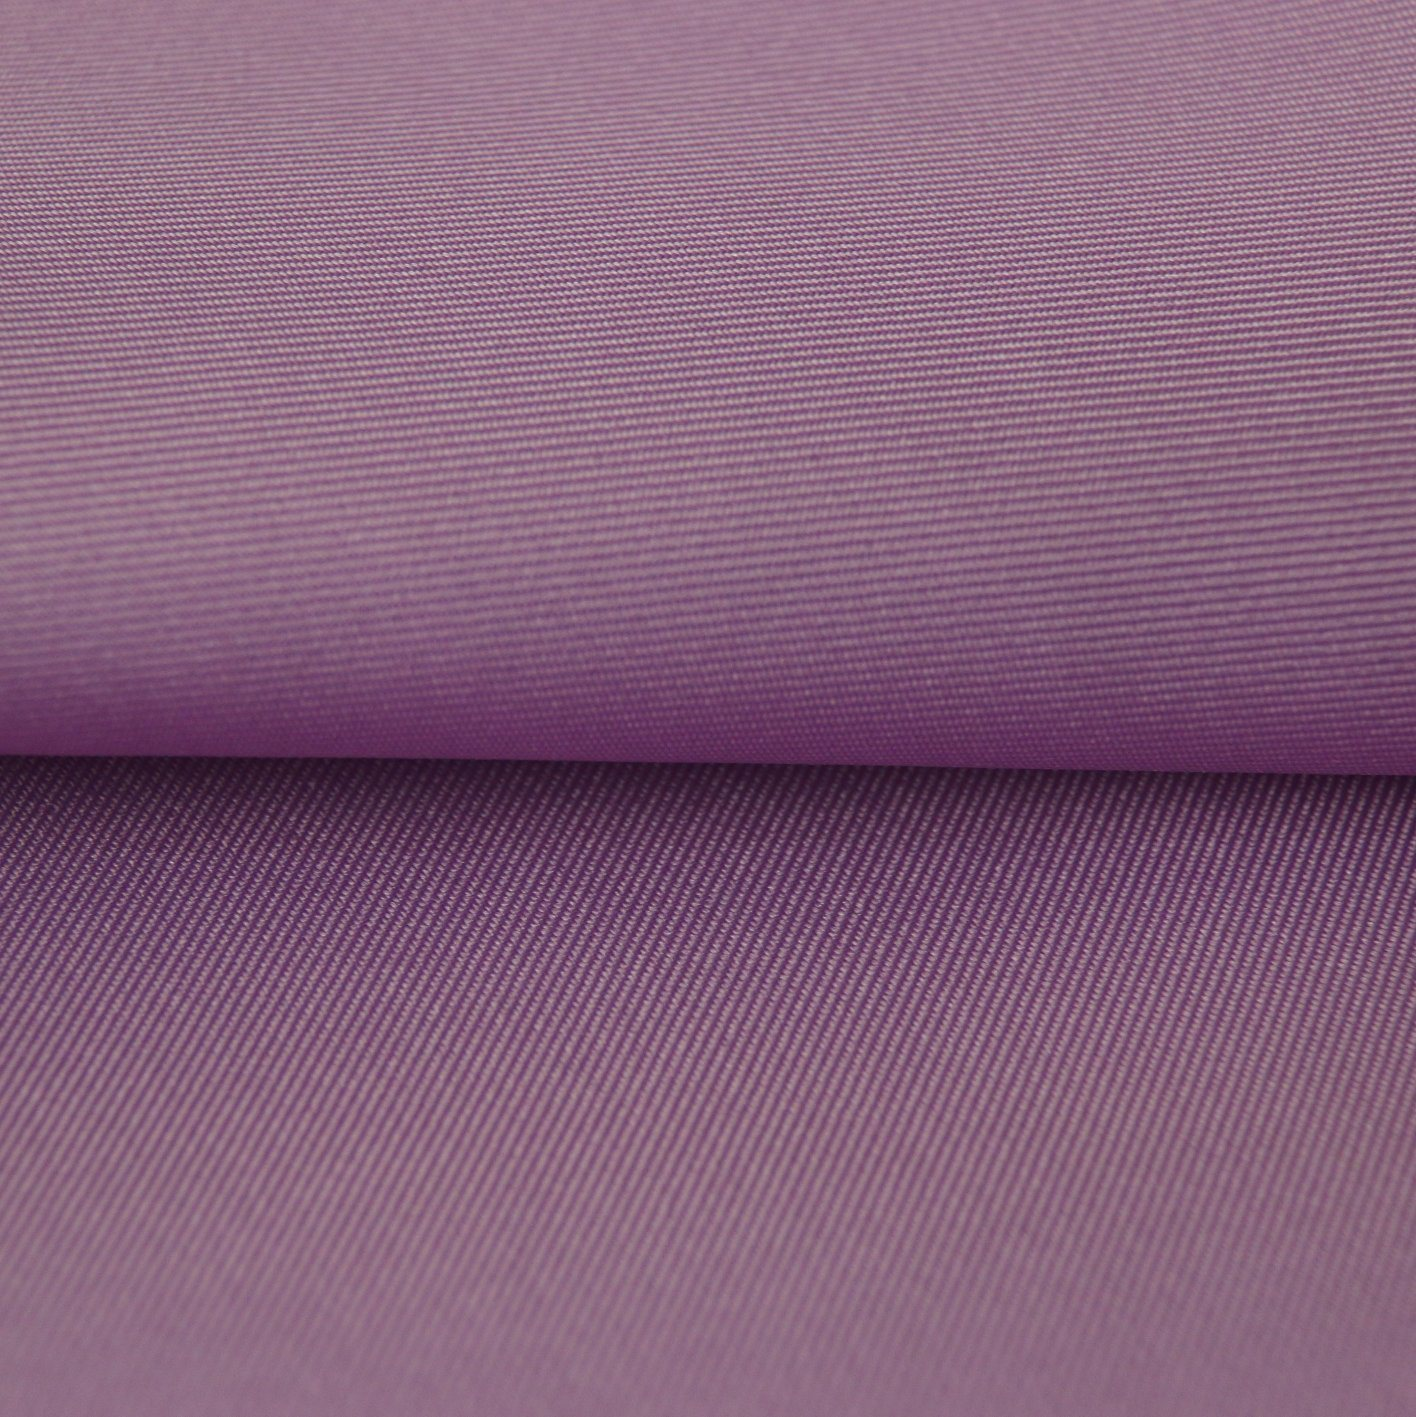 Polyester 150d/48f*150d/48f 2/2twill Dyed Gaberdine for Uniform Workwear Fabric